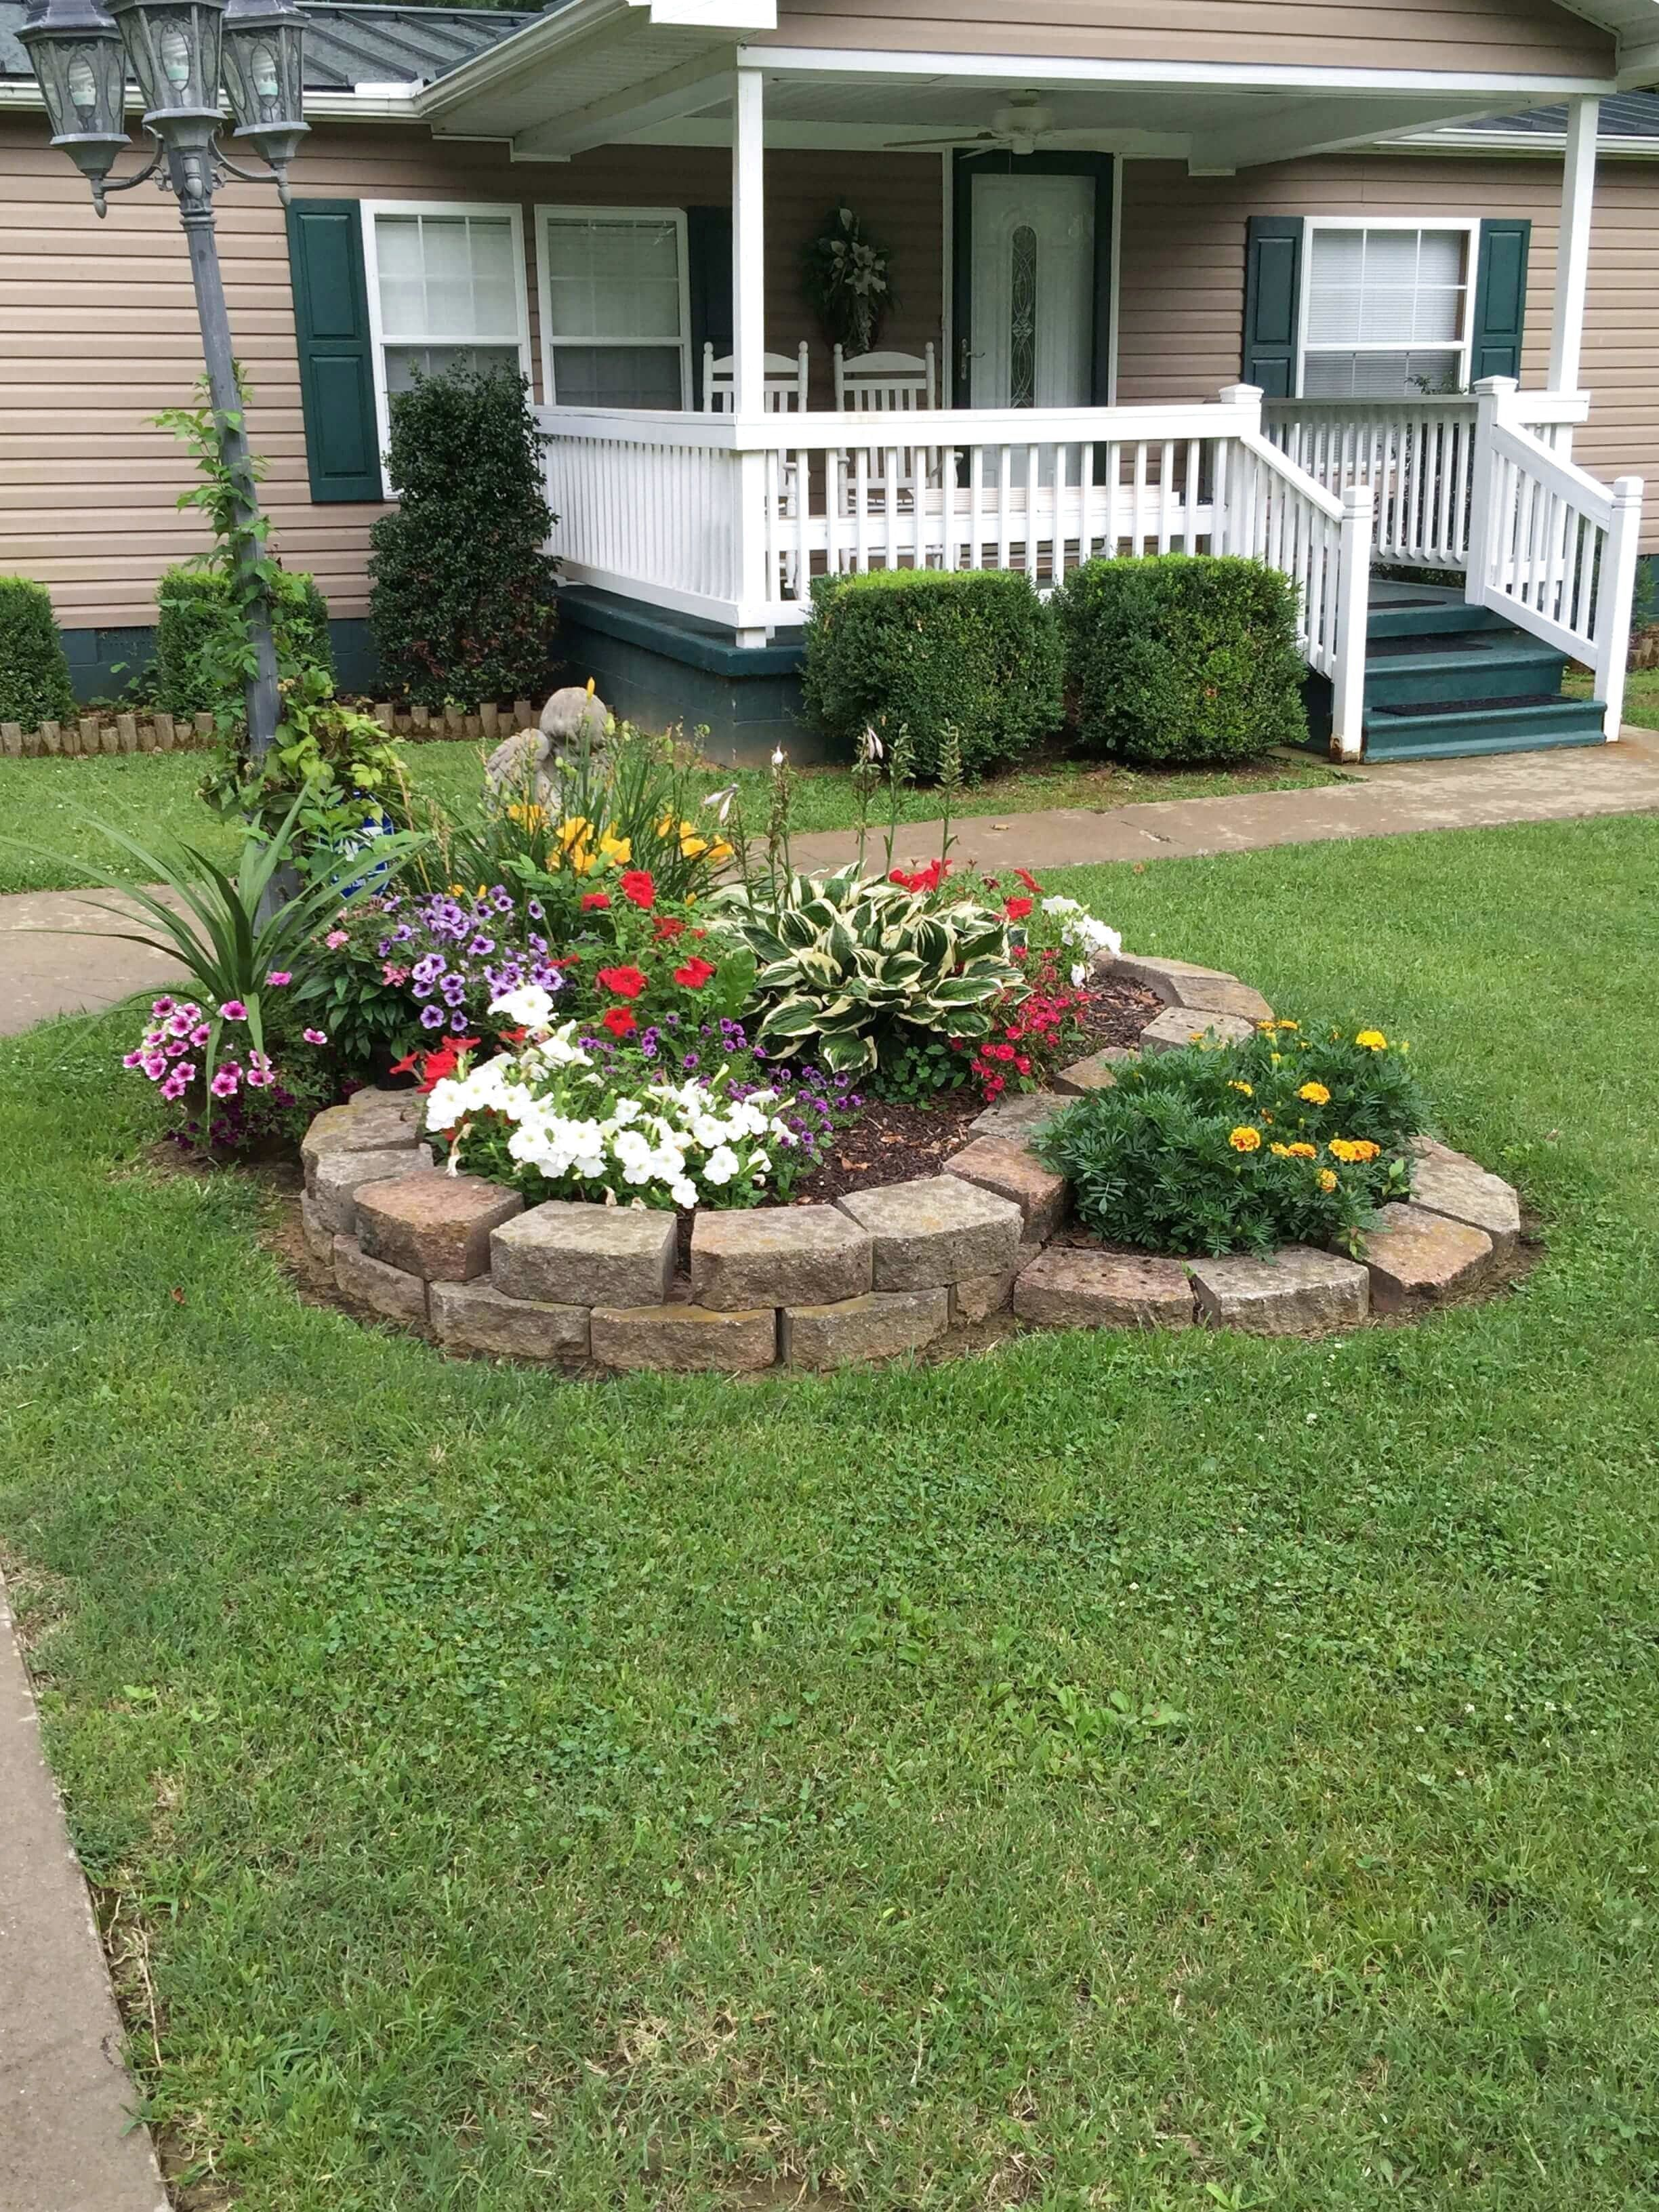 50 Beautiful Flower Garden Design Ideas In 2020 Front Yard